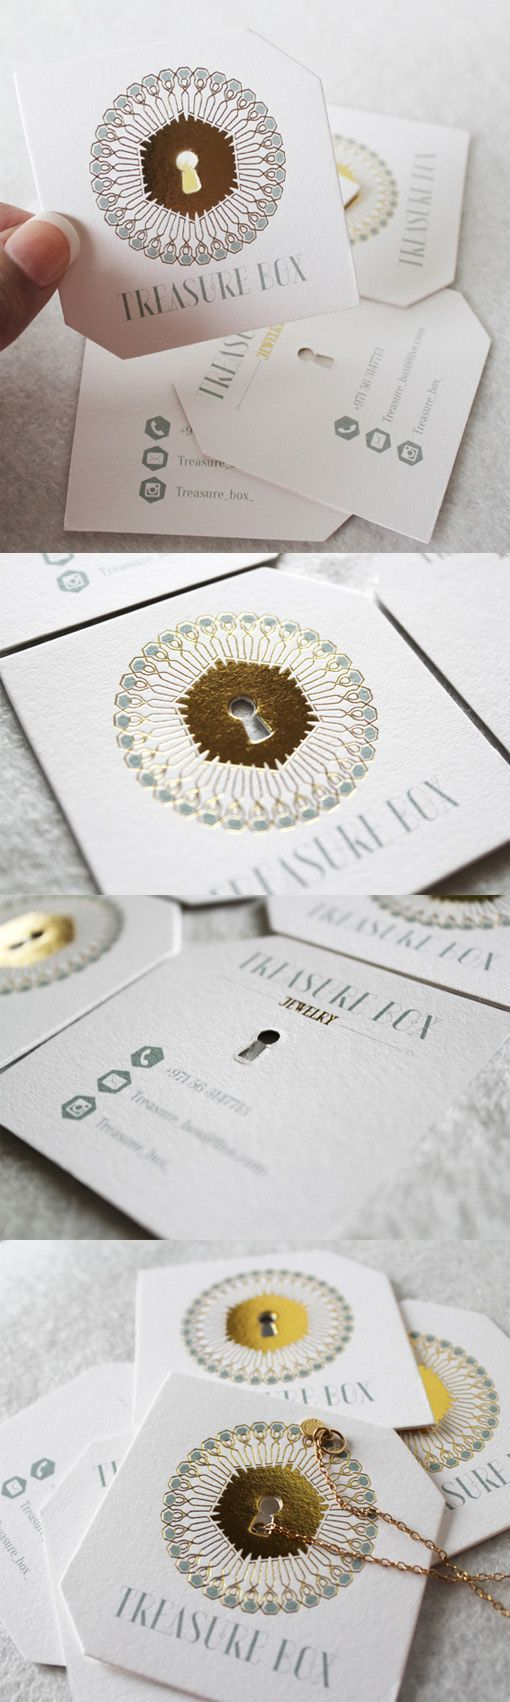 The 25+ best Embossed business cards ideas on Pinterest ...